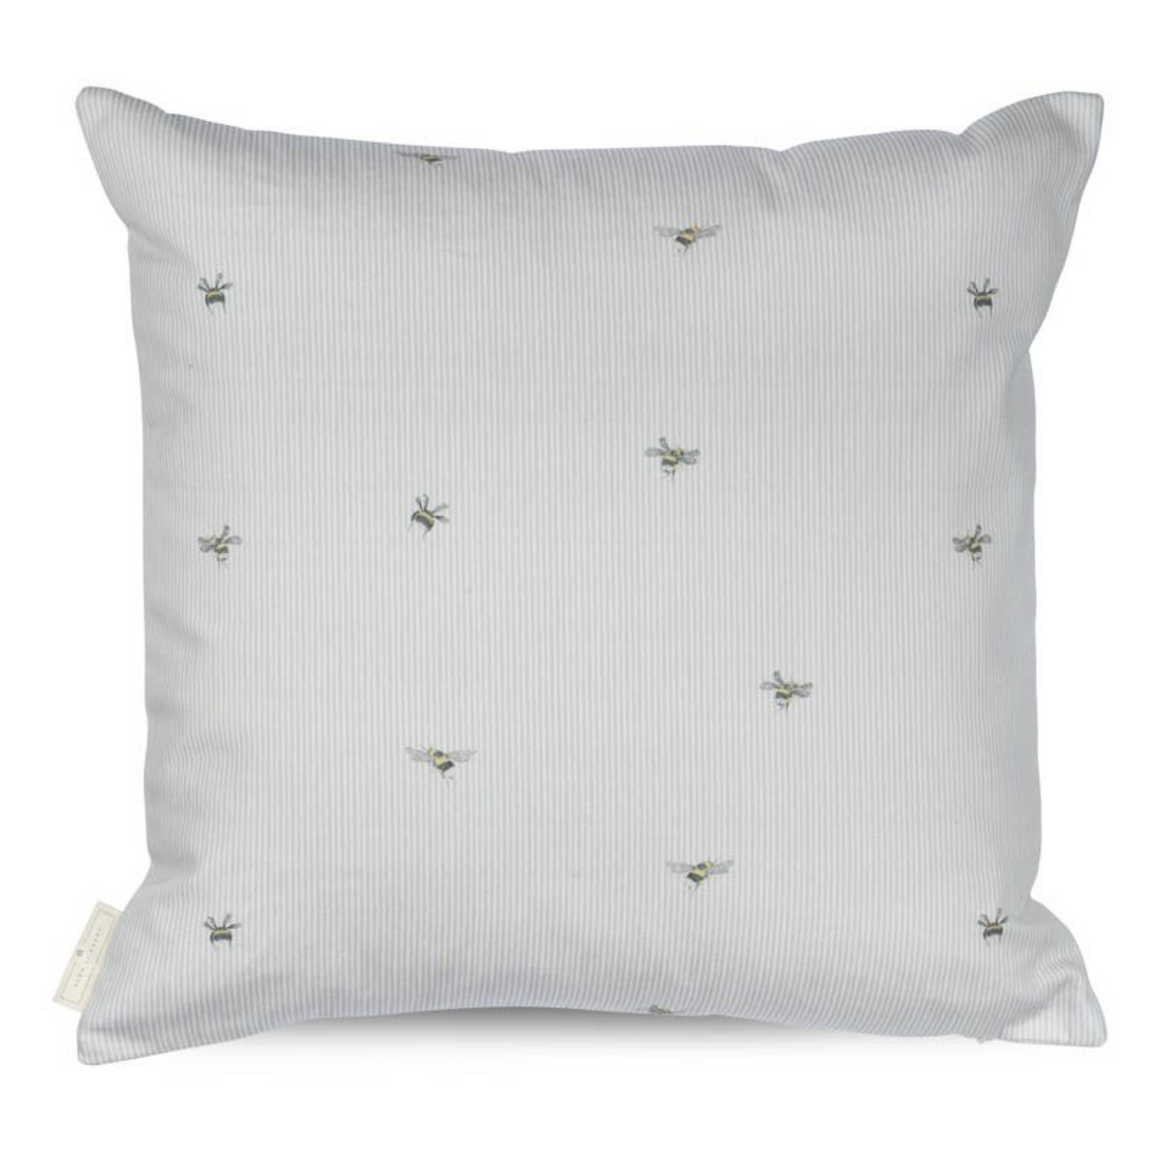 BEE STRIPE CUSHION - DUCK DOWN FEATHER